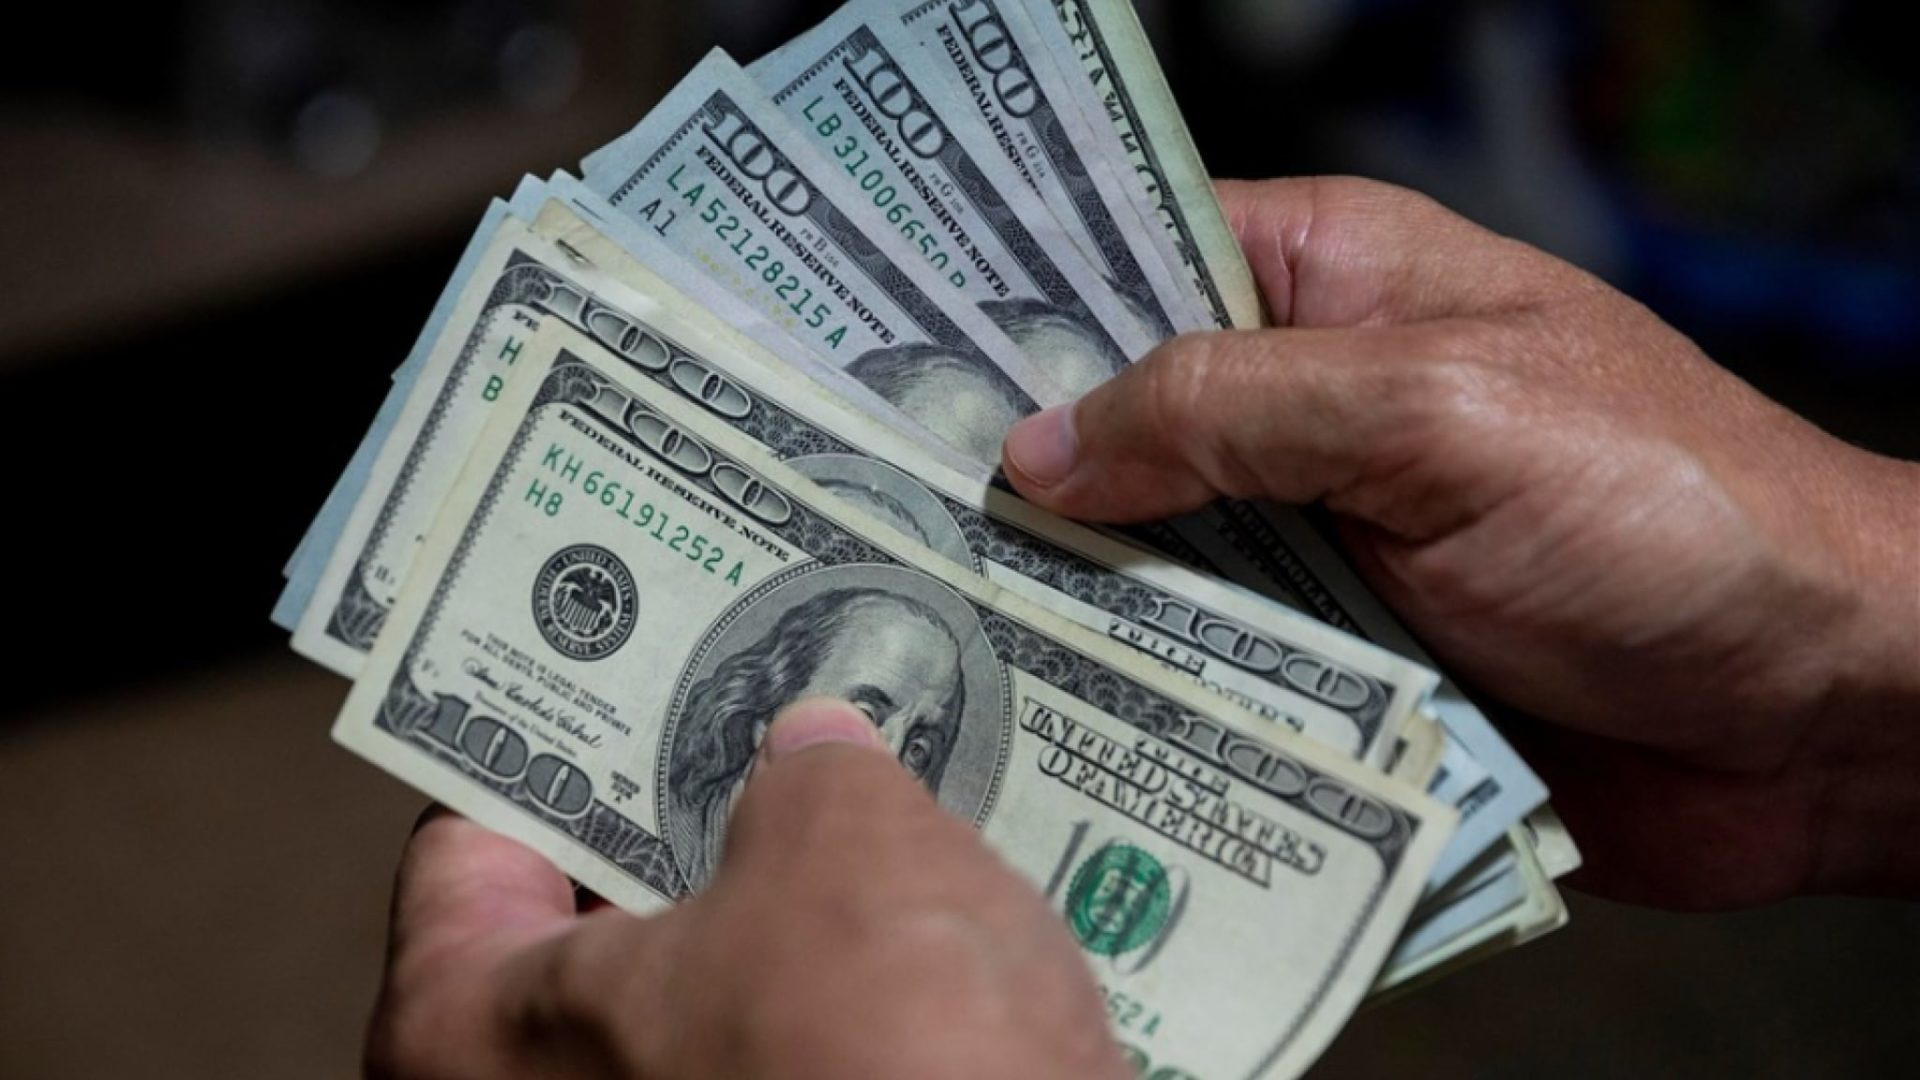 The US Has The World's Largest Payday Lending Industry